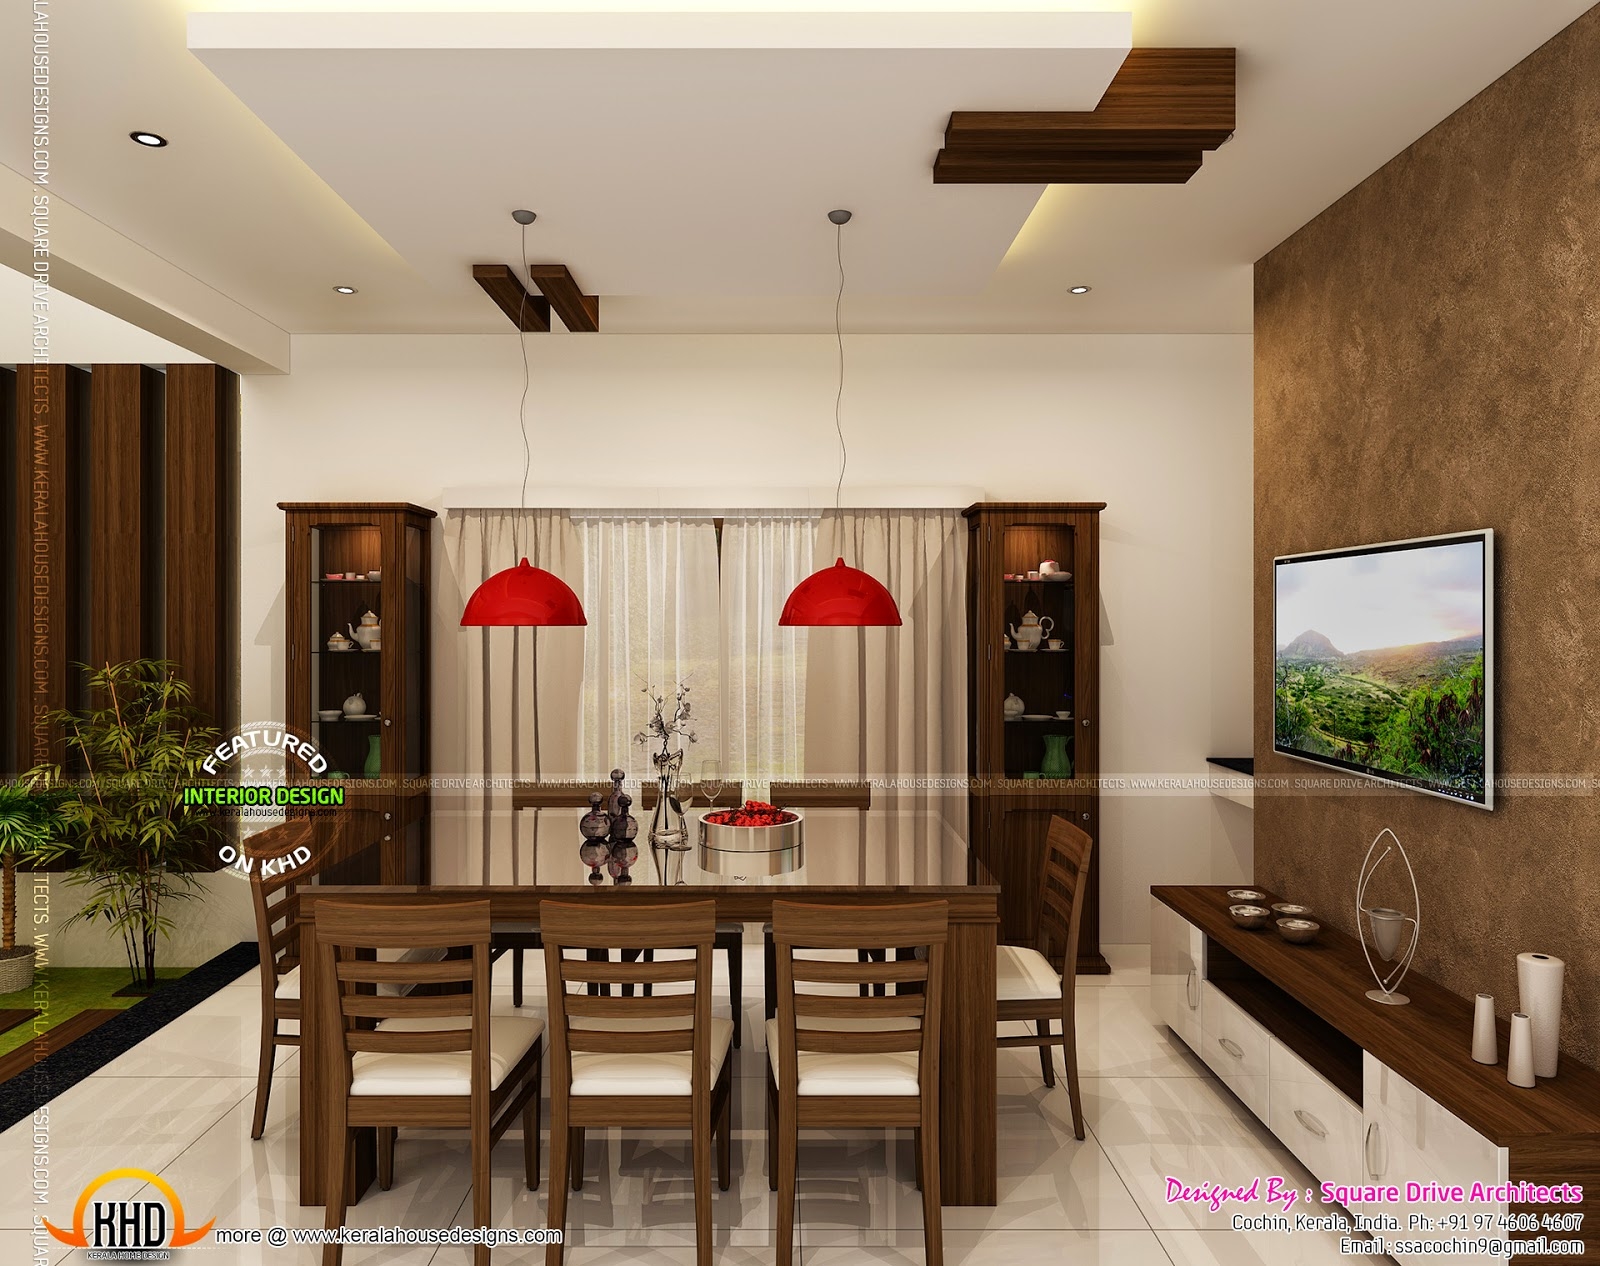 Luxury interior designs in kerala keralahousedesigns for Kerala model interior designs